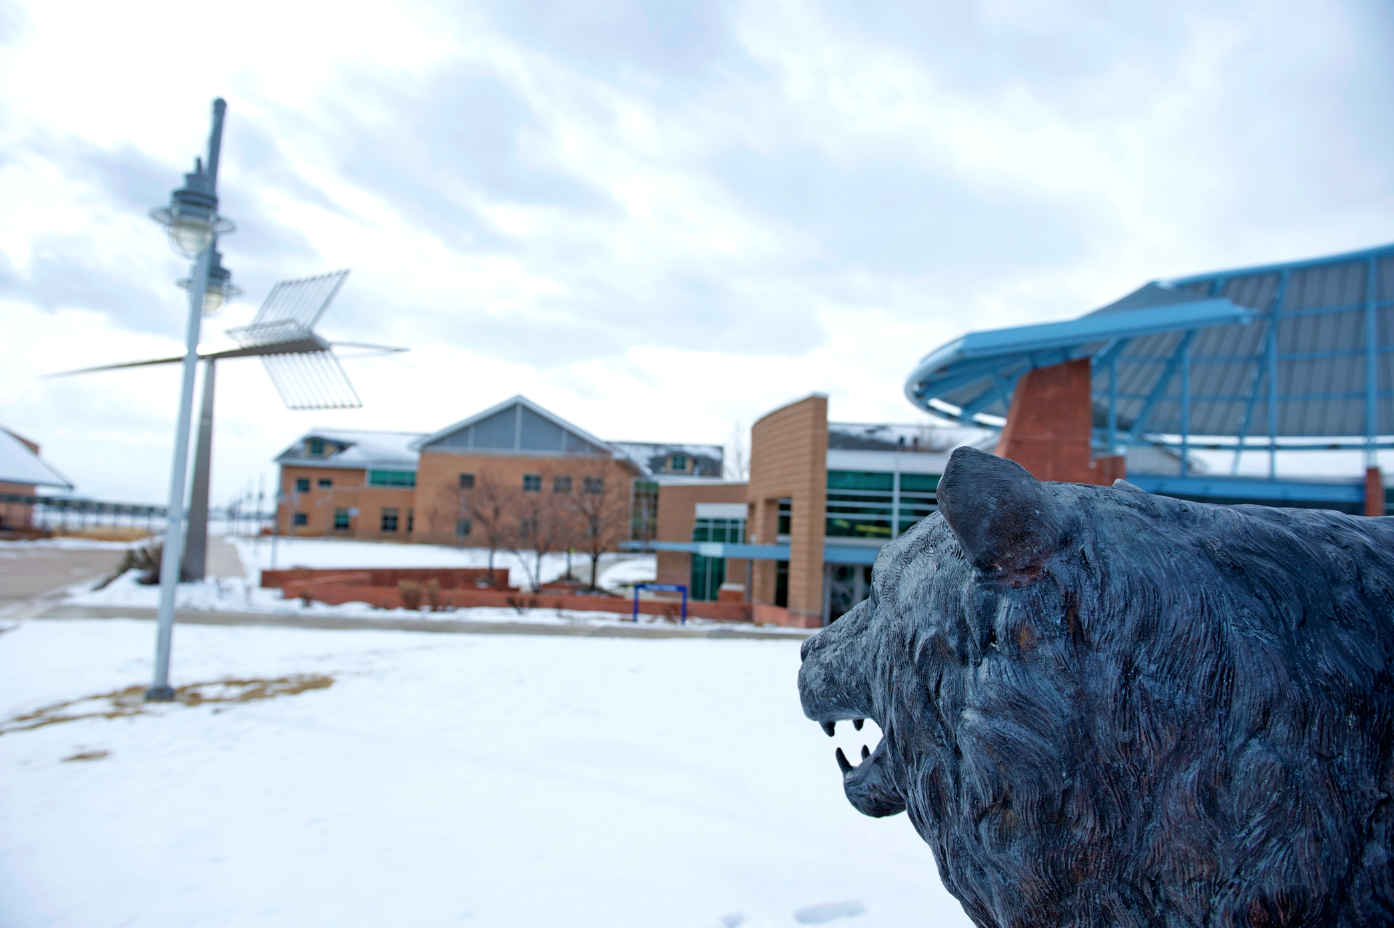 Slcc Announces Nationwide Search For New President